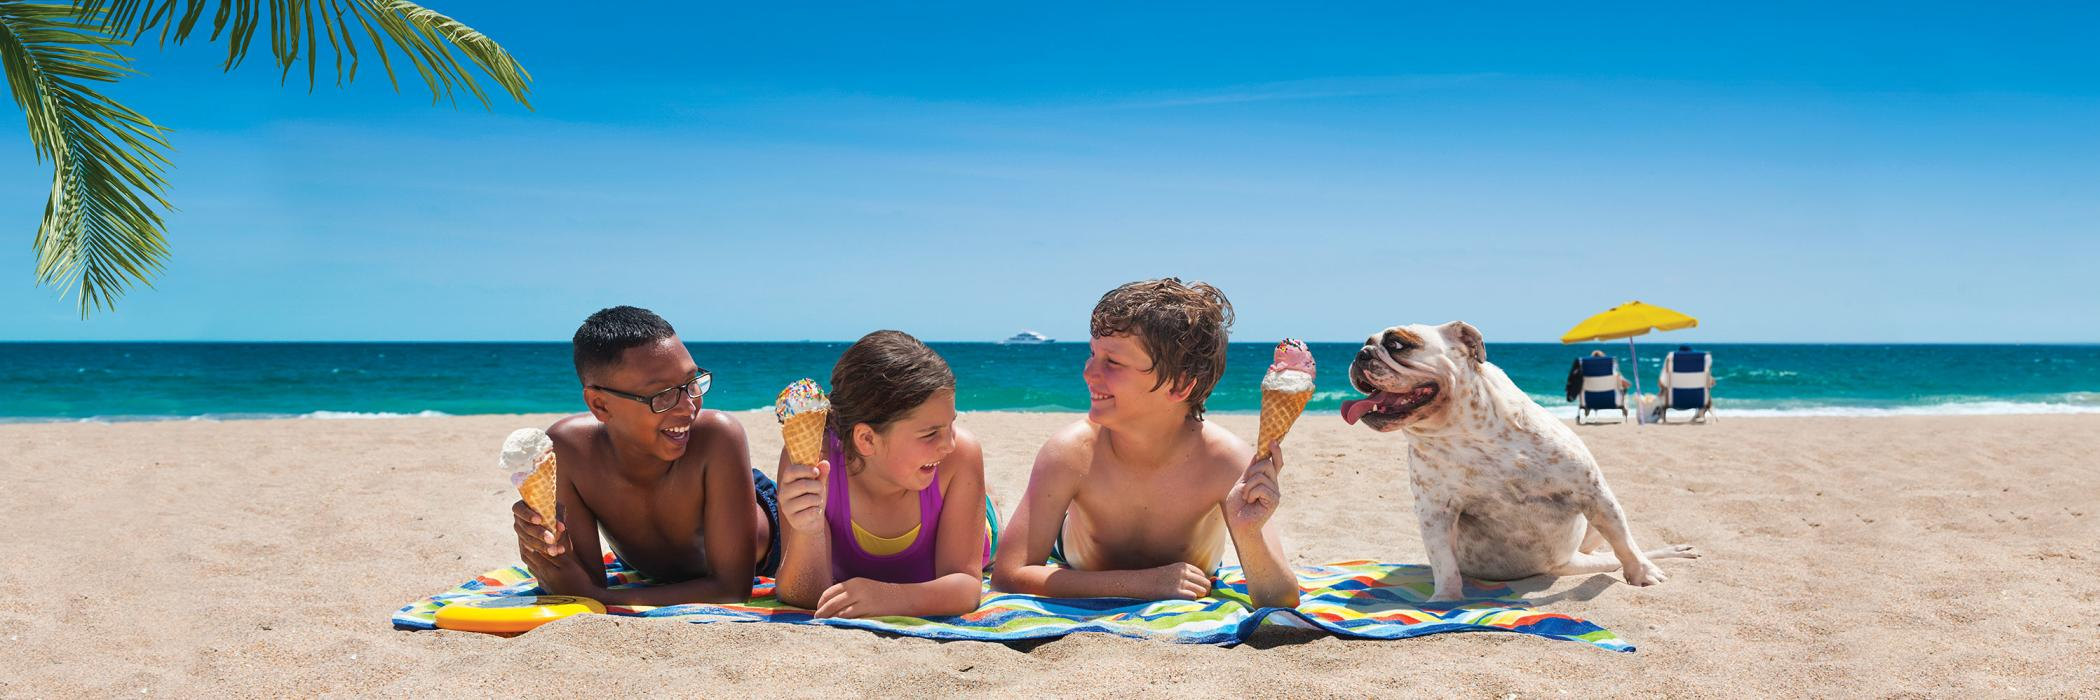 Activities things to do with kids in fort lauderdale m4hsunfo